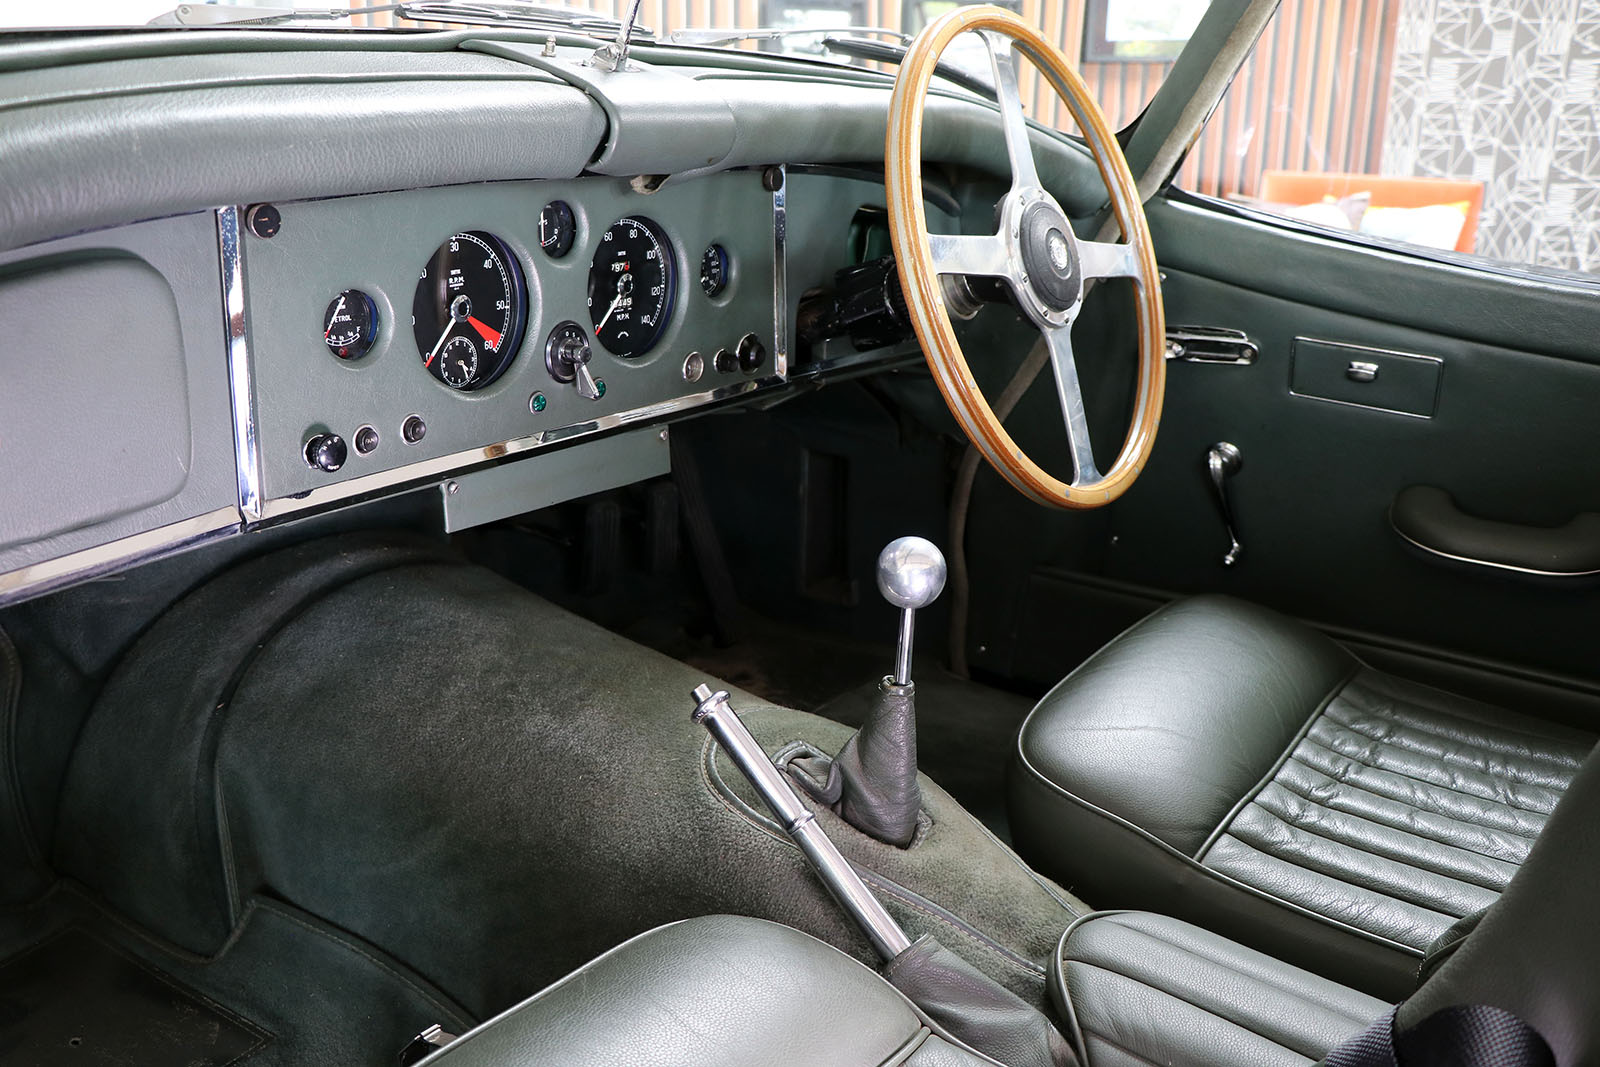 1959_green_XK150_3.8_DHC_sayer selection_wilkinson_12 web.jpg